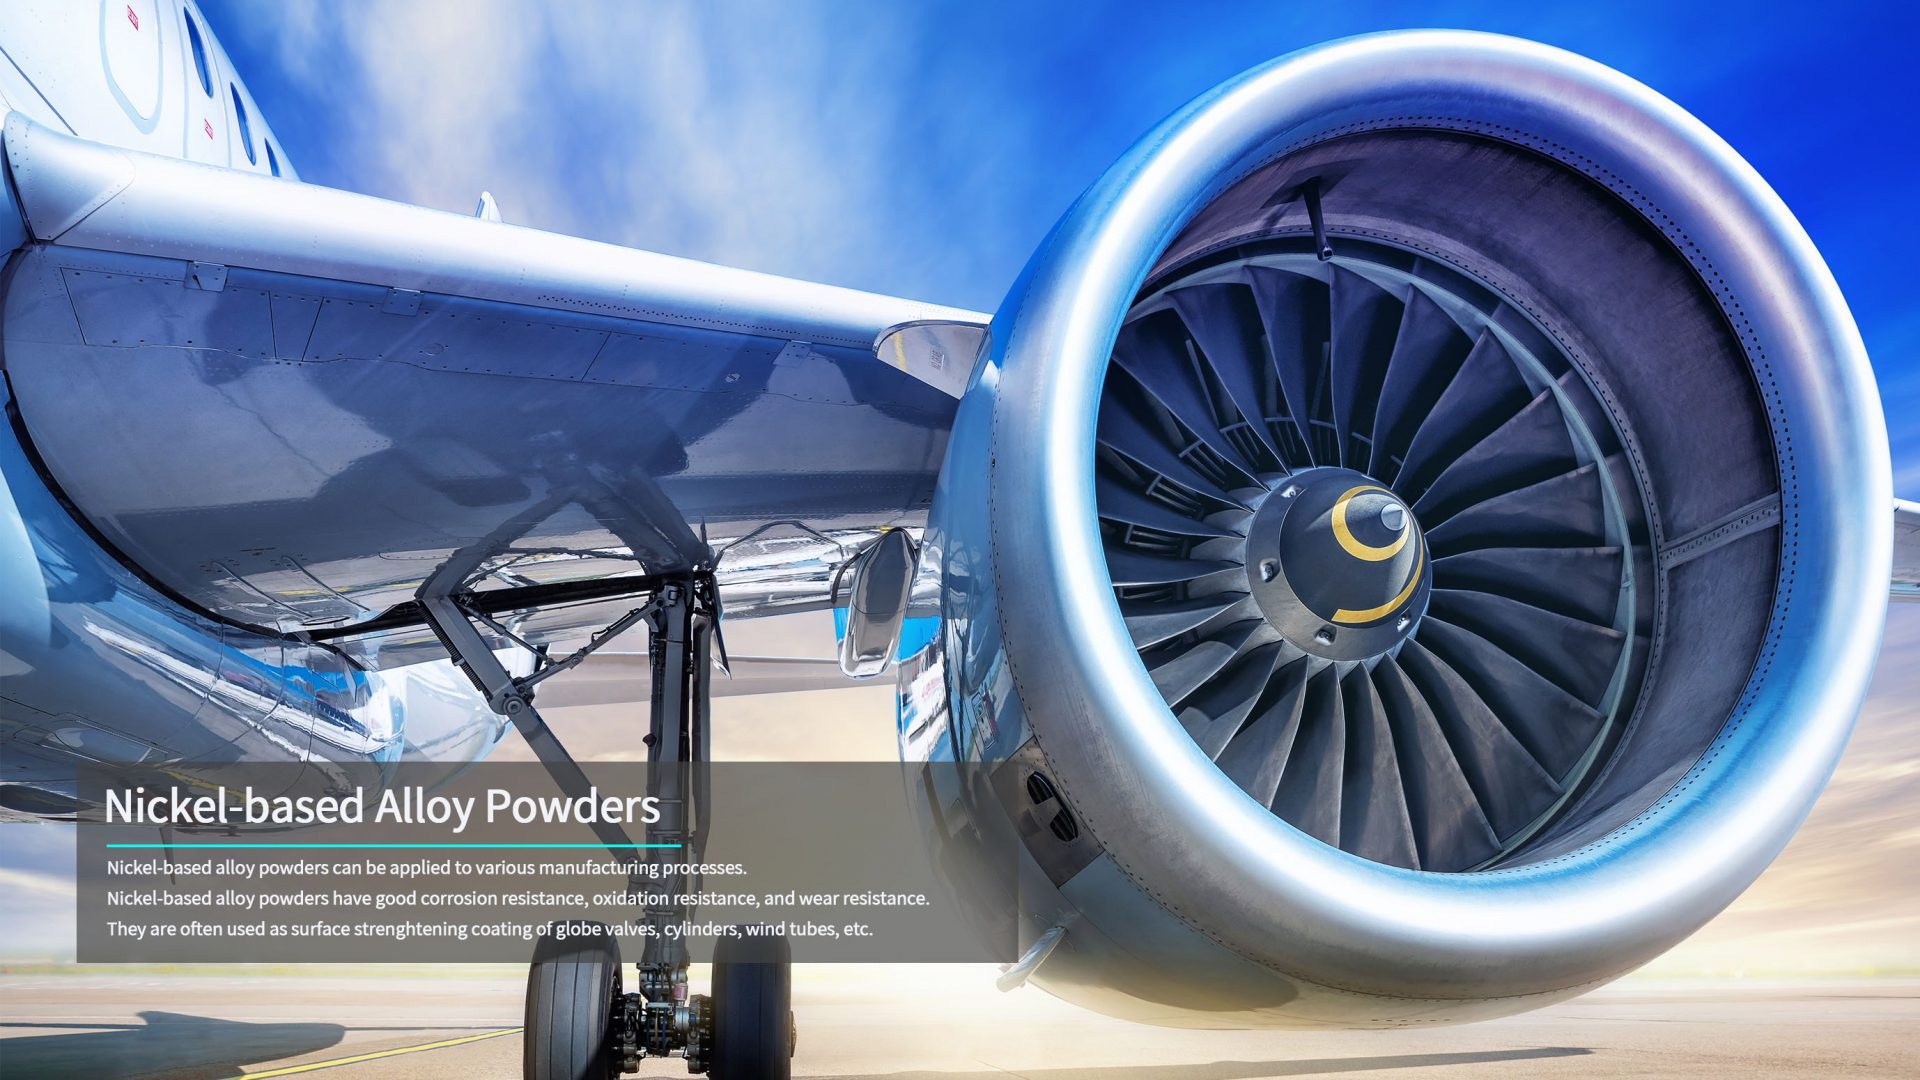 Nickel-Based Alloy Powders